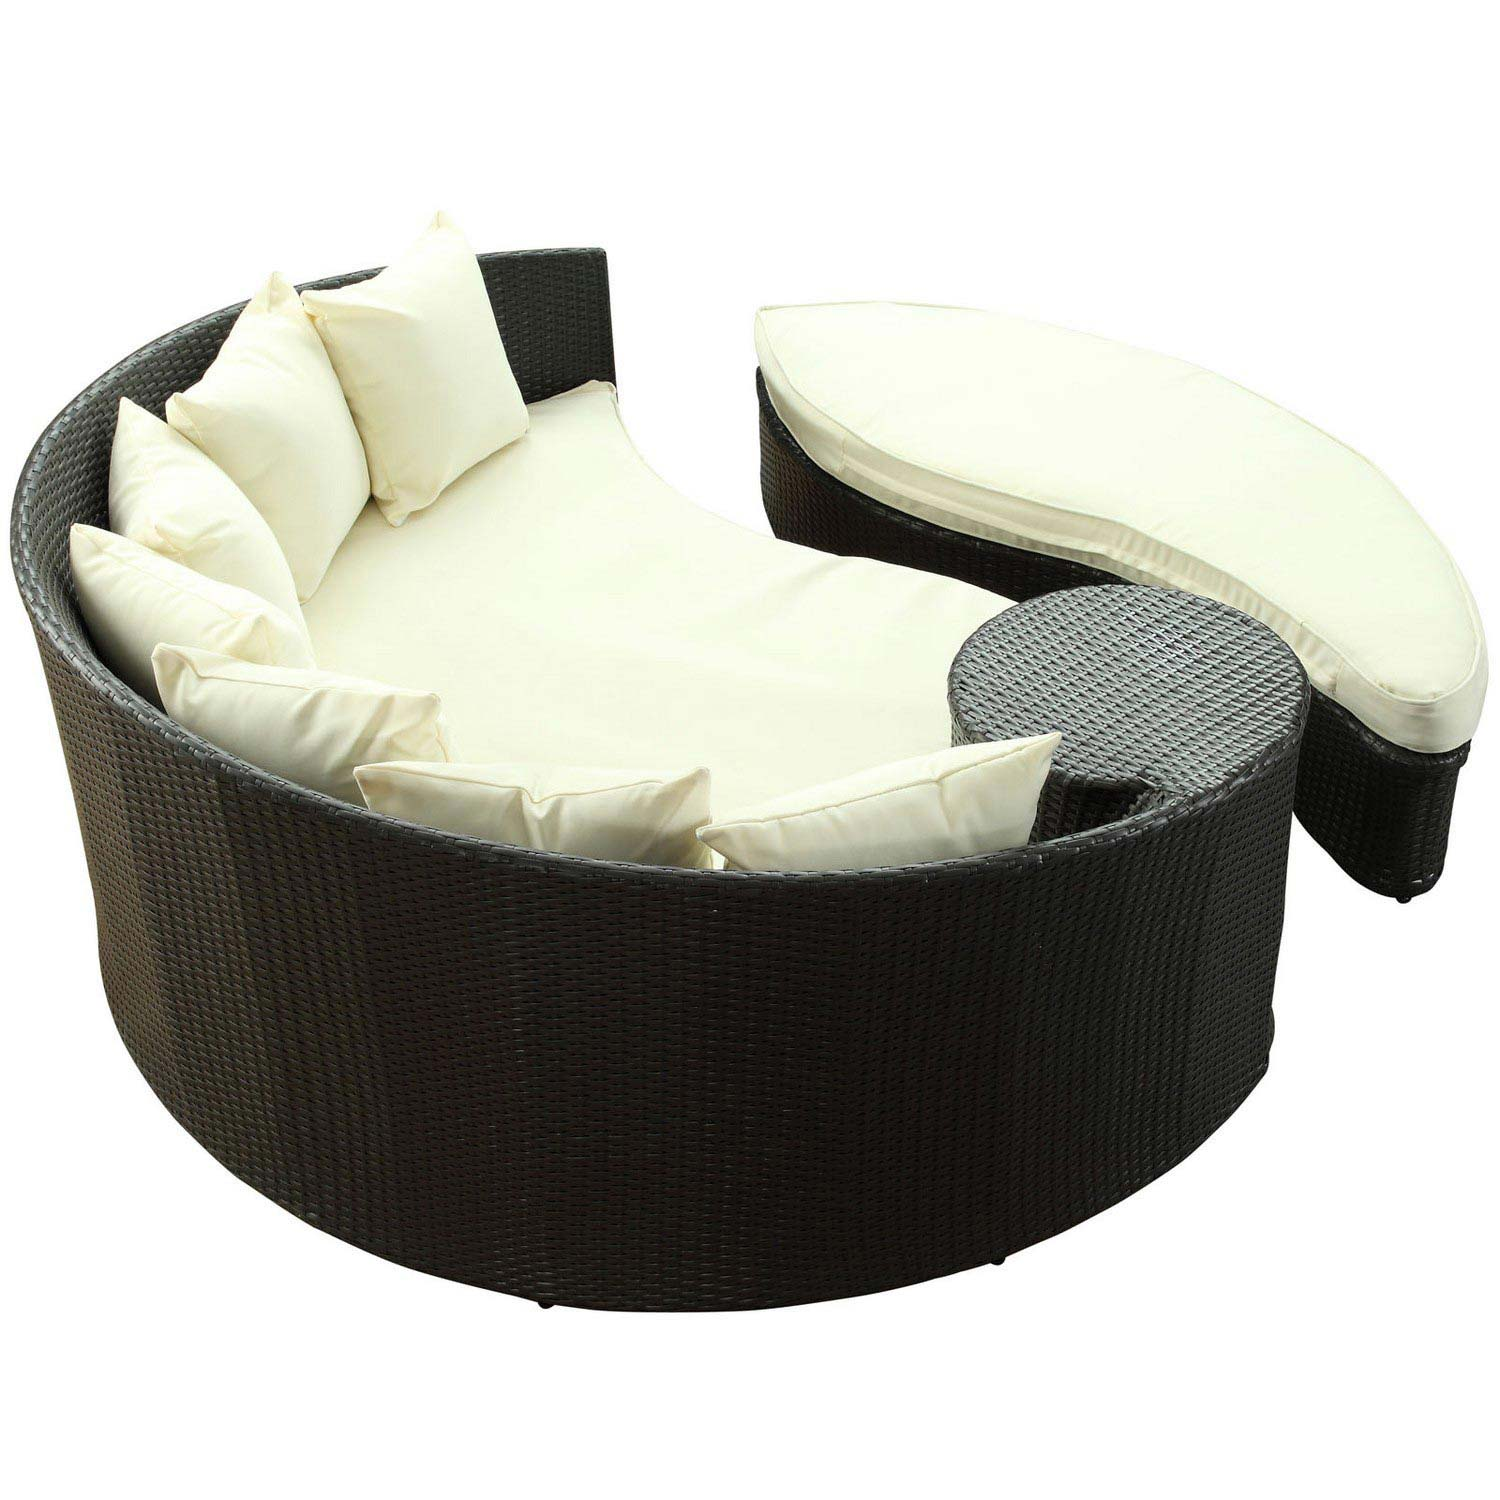 Modway Taiji Outdoor Patio Daybed - Espresso/White